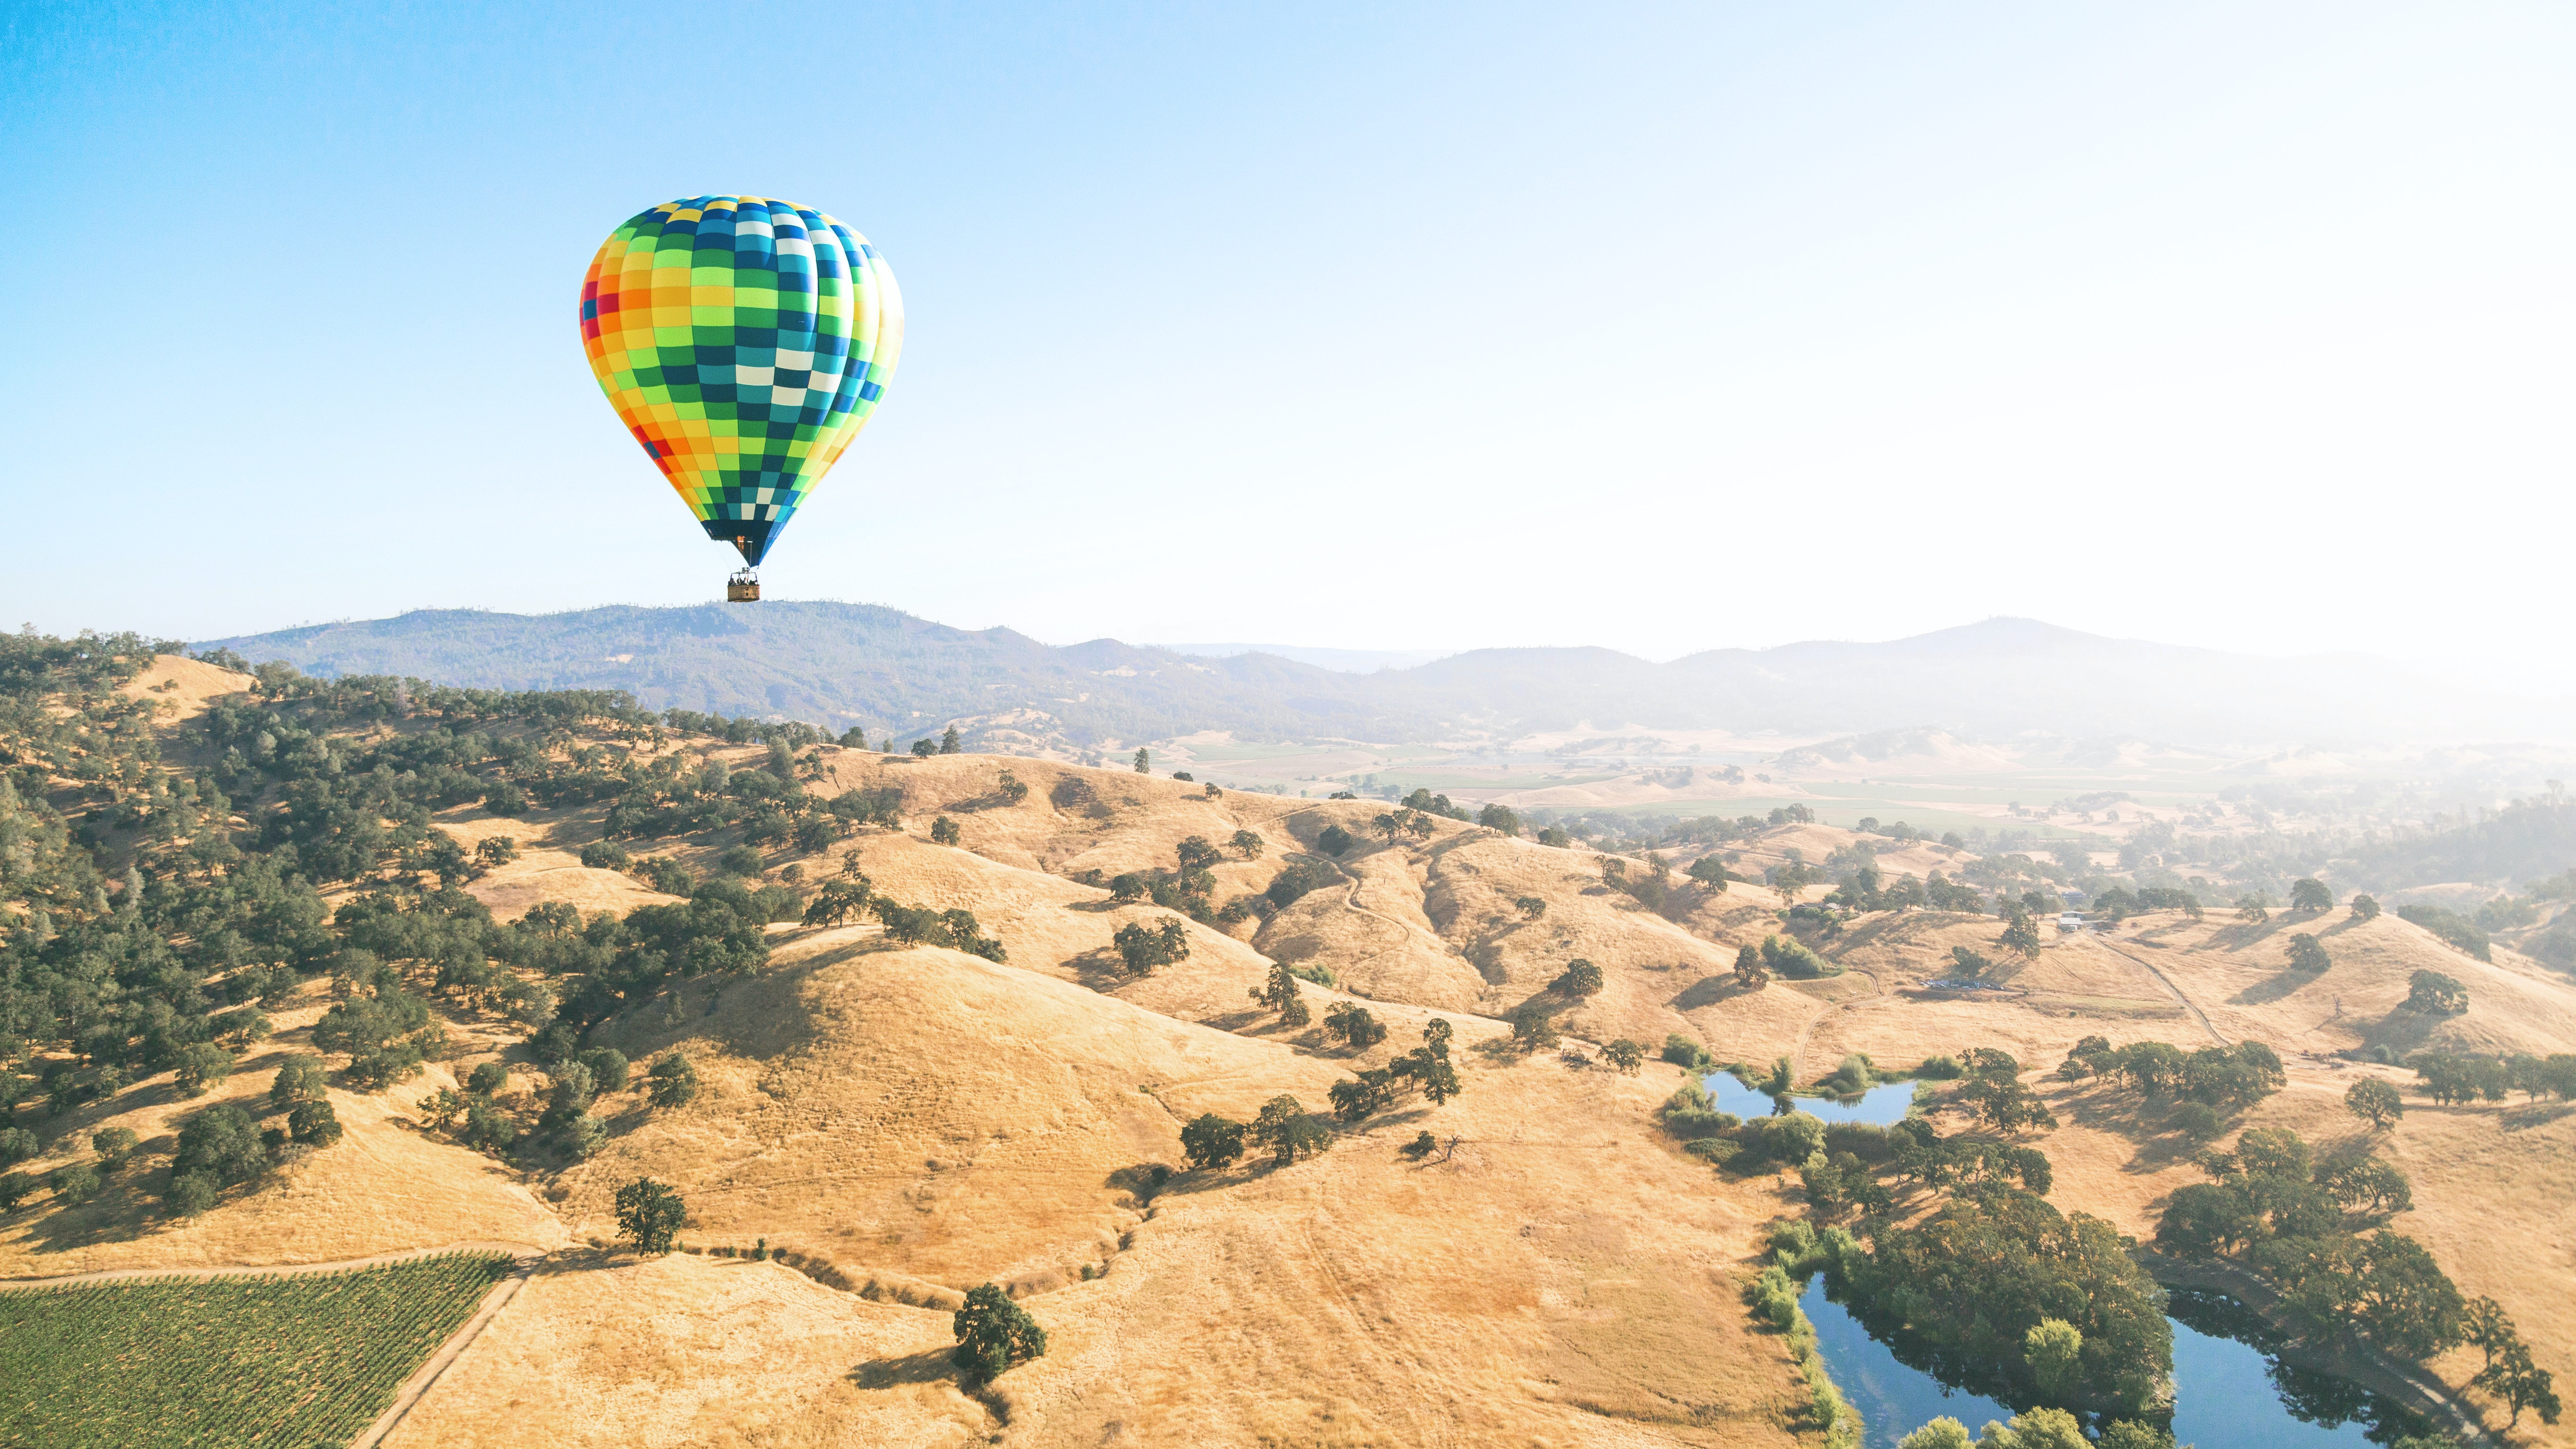 green and orange hot air balloon flying over the mountains